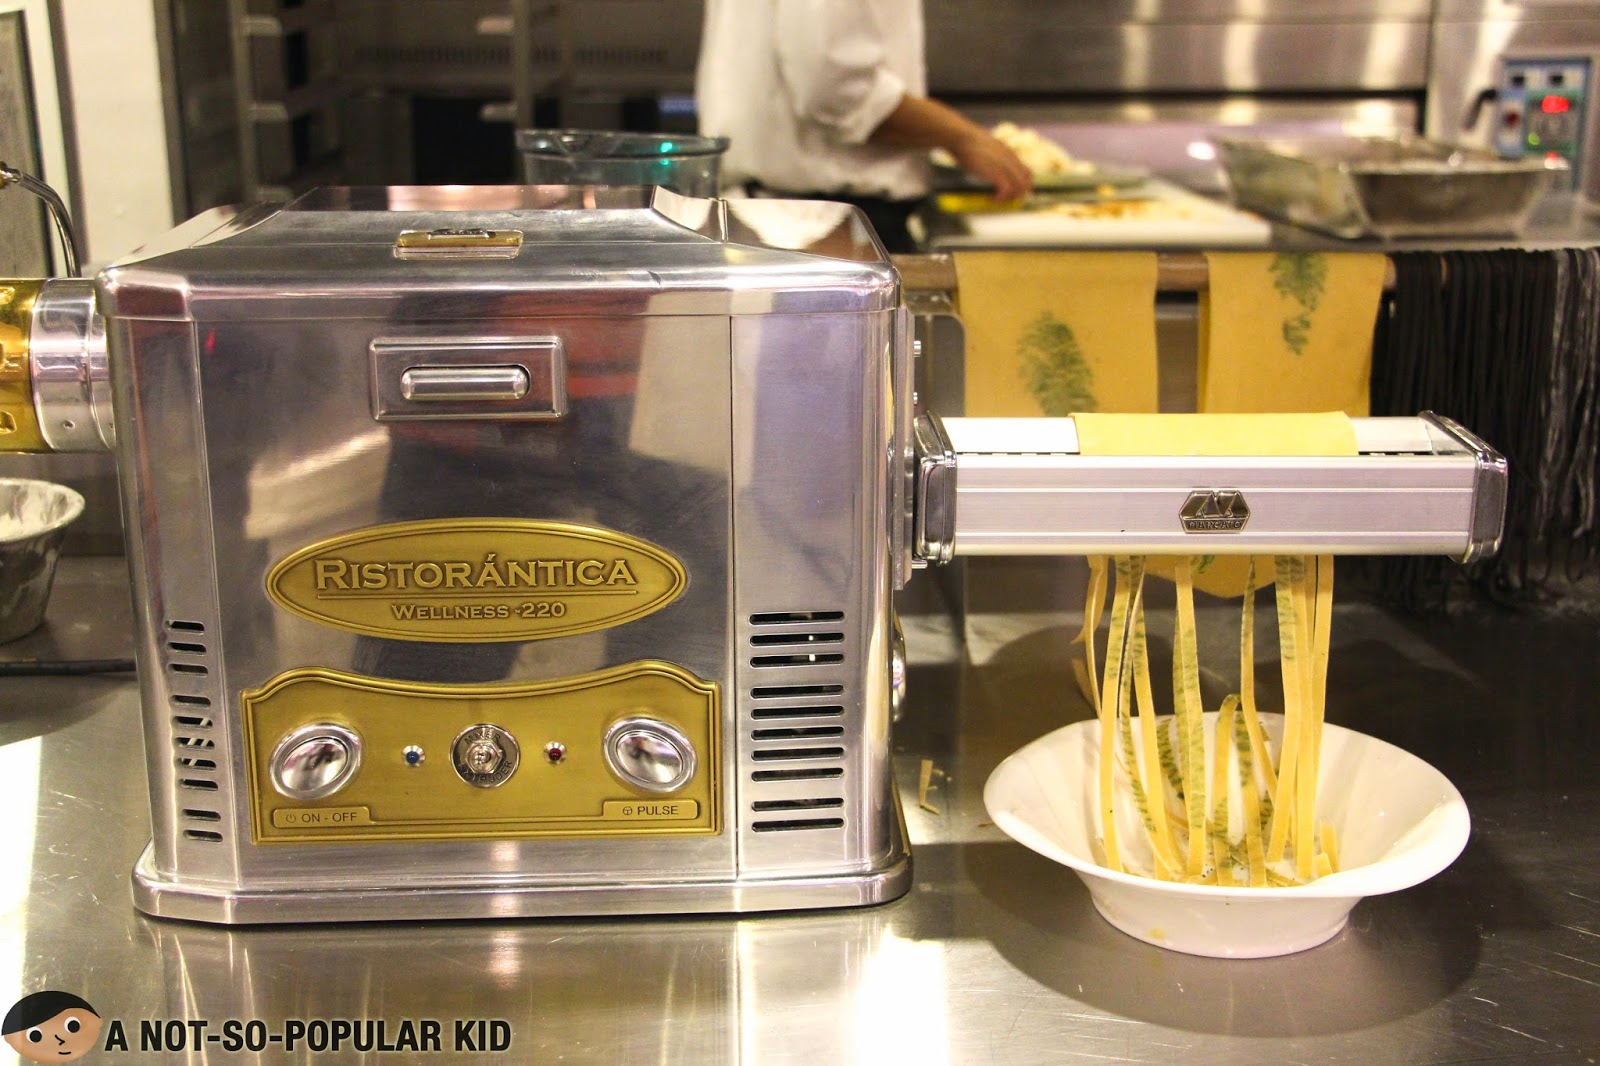 Pasta Maker in Vikings Buffet - SM Megamall